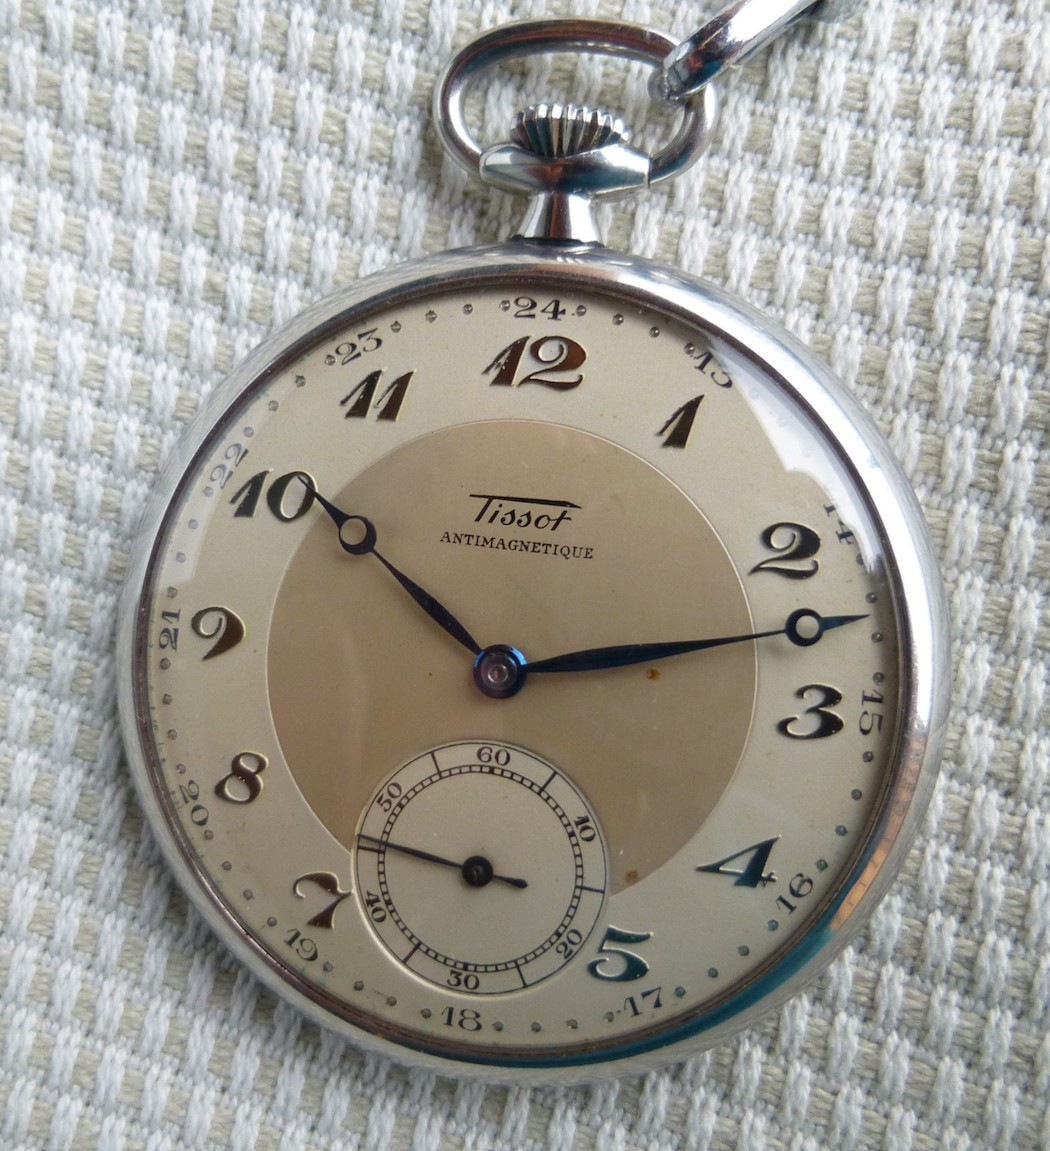 The original Tissot pocketwatch - forms the basis for the Tissot 1936 Heritage (photo credit bubba48 on watchuseek.com)